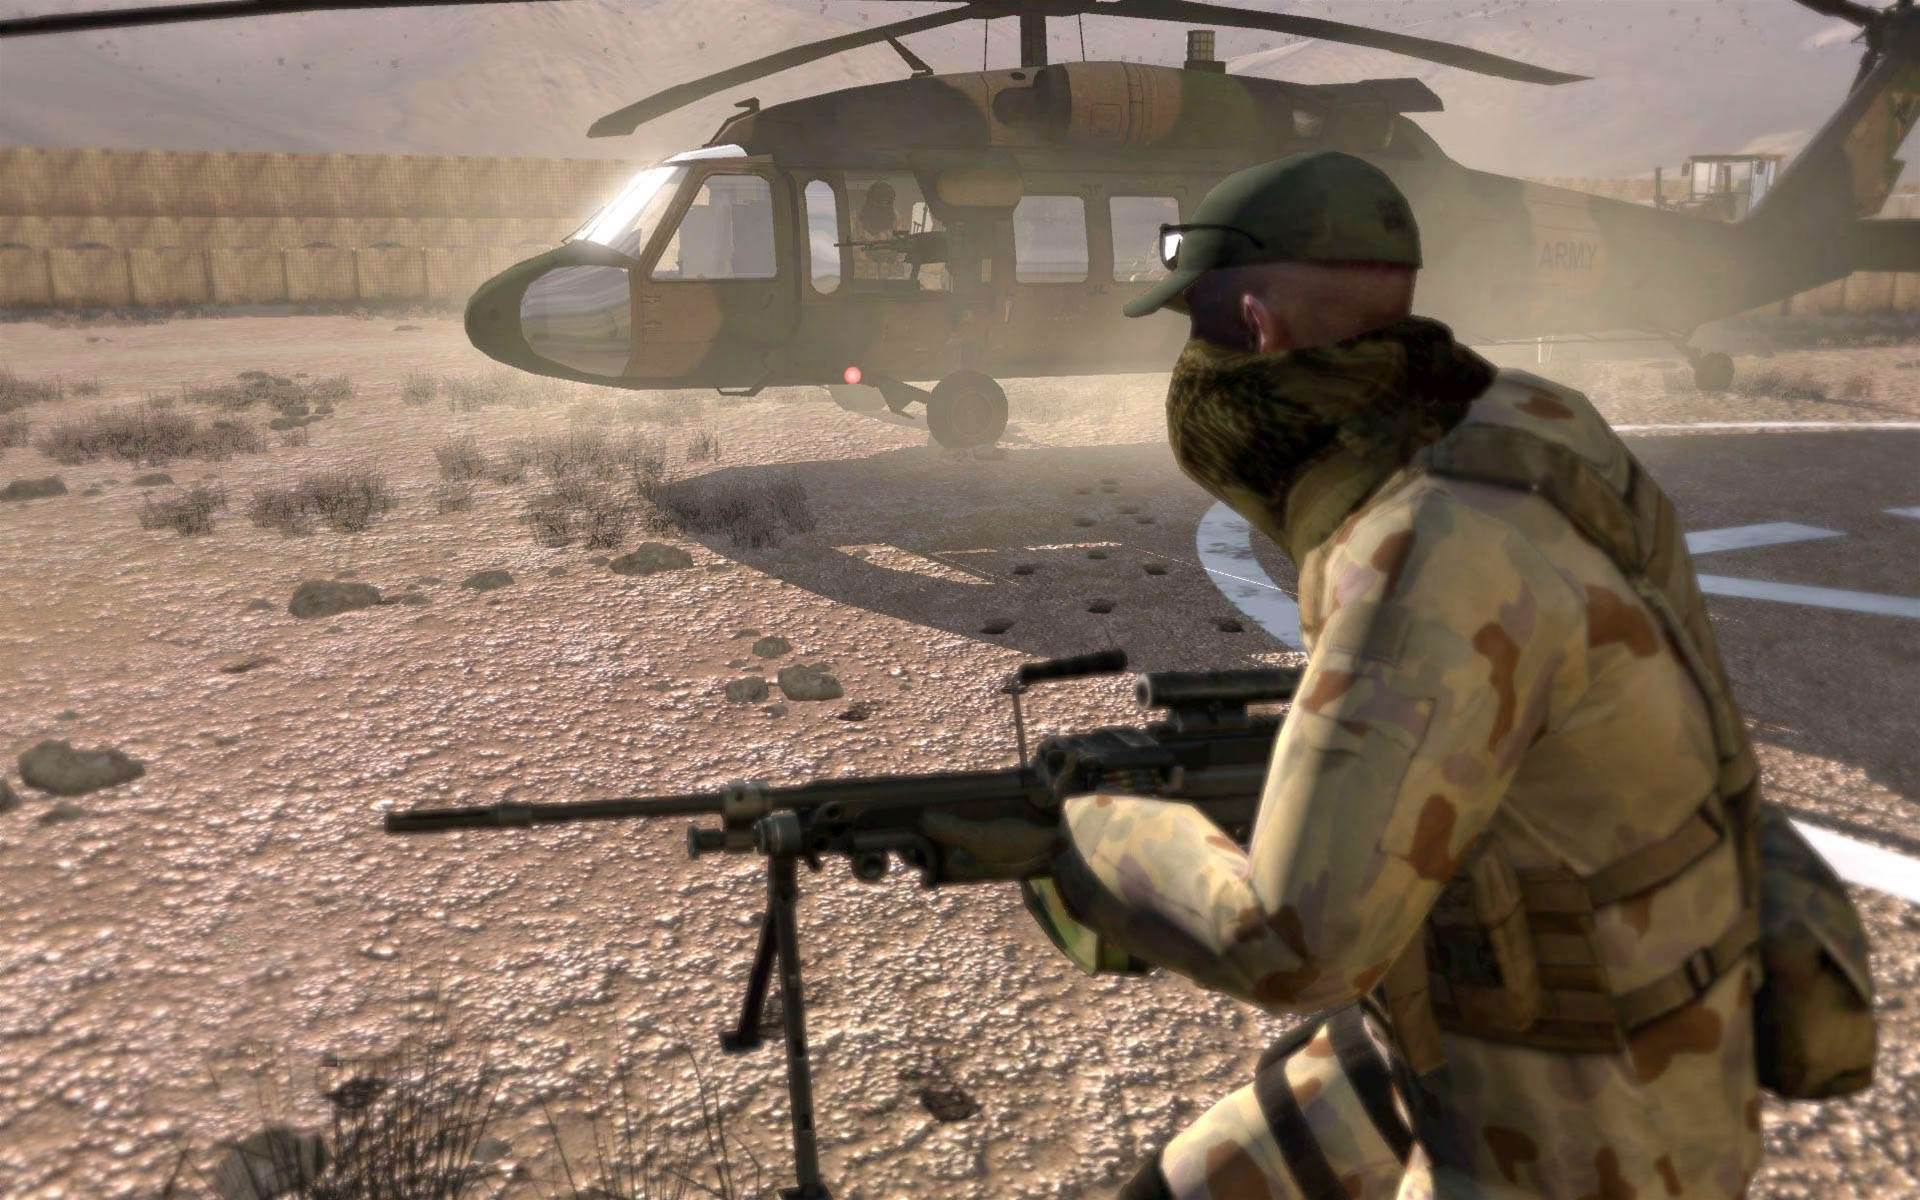 "The ADF does not consider the VBS as a gaming system. ""The scenarios and supporting terrain databases developed by Army are for specific military training purposes,"" a Defence spokeperson said. However, a version of the product was available for Defence personnel to use on their home computers along with commercial variants."